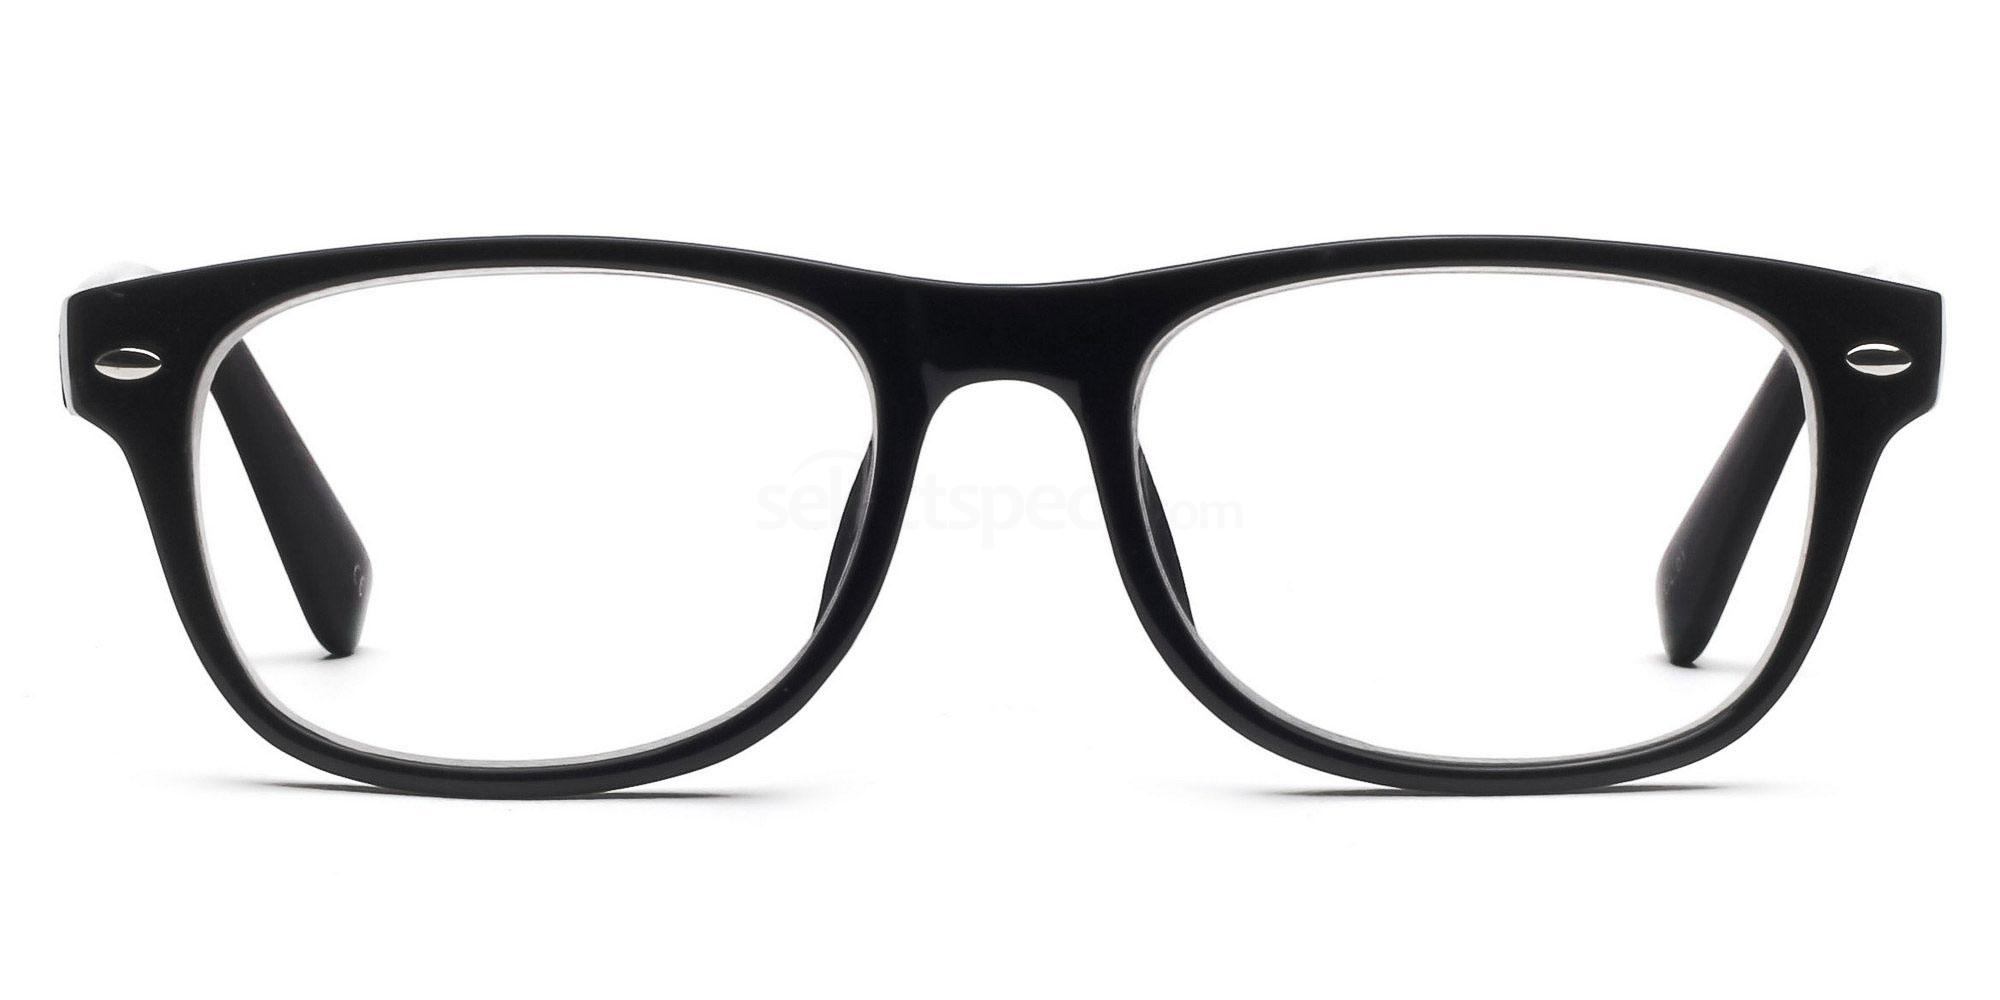 Cheap-prescription-glasses-wayfarer-style